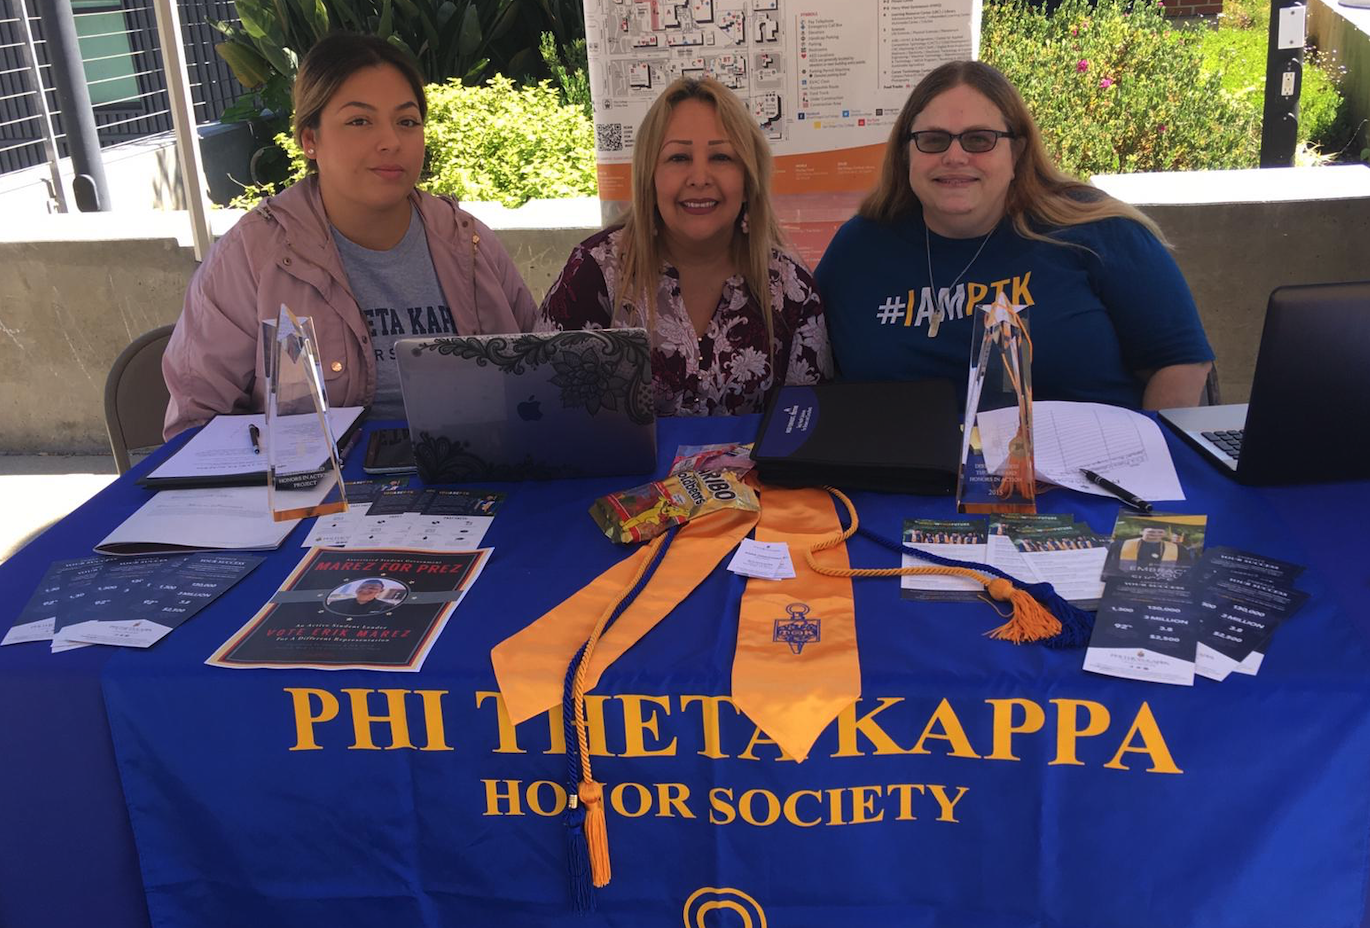 Phi Theta Kappa is one of the many club options at City College. Photo by Melisa Cabello-Cuahutle